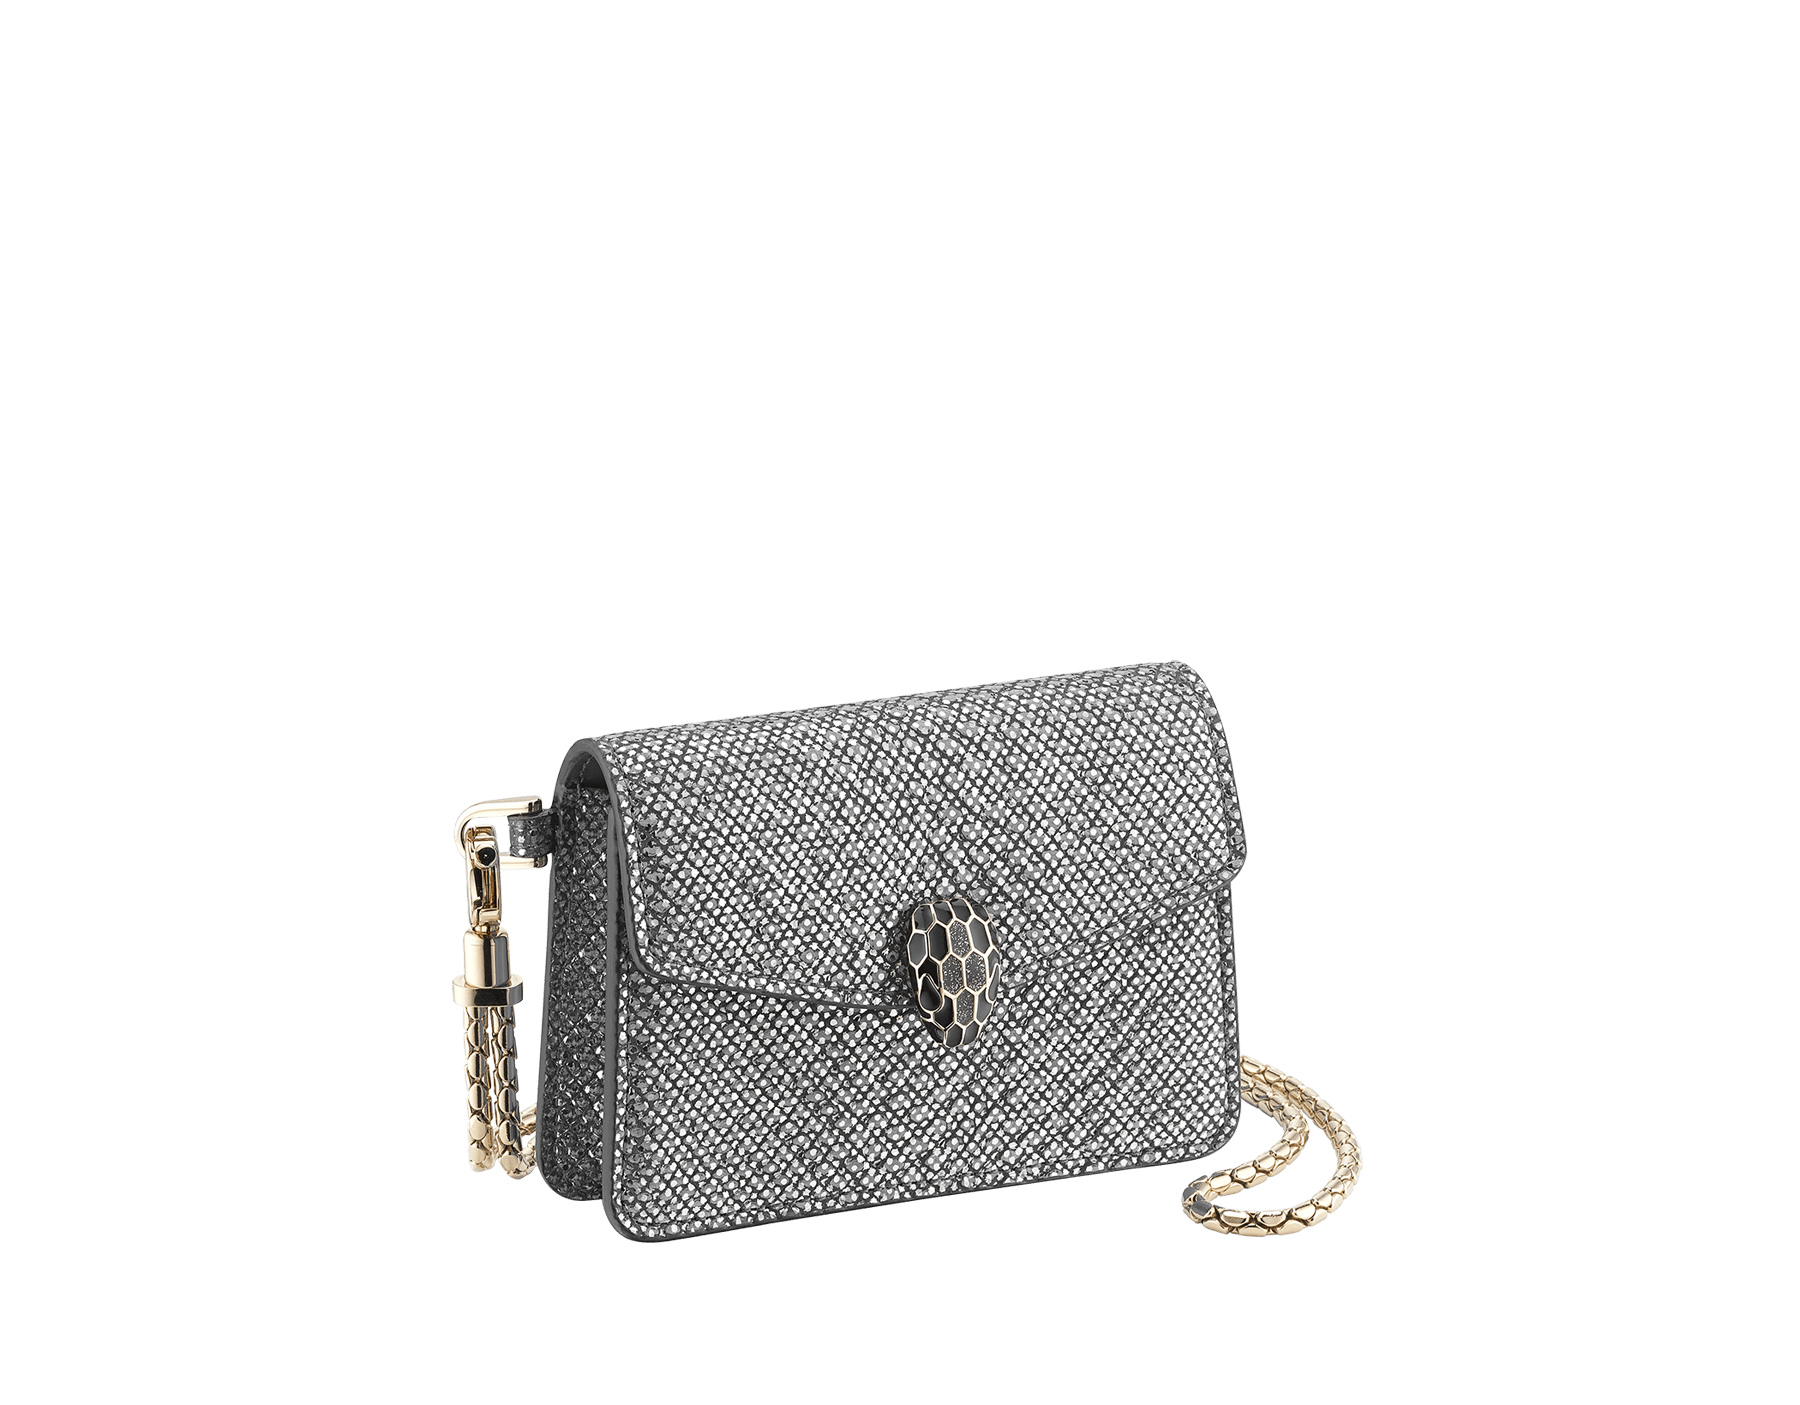 Serpenti Forever Travel Holders Kit in charcoal diamond metallic karung skin. Iconic snake head closure in black and glitter charcoal diamond enamel, with black enamel eyes. 289324 image 1